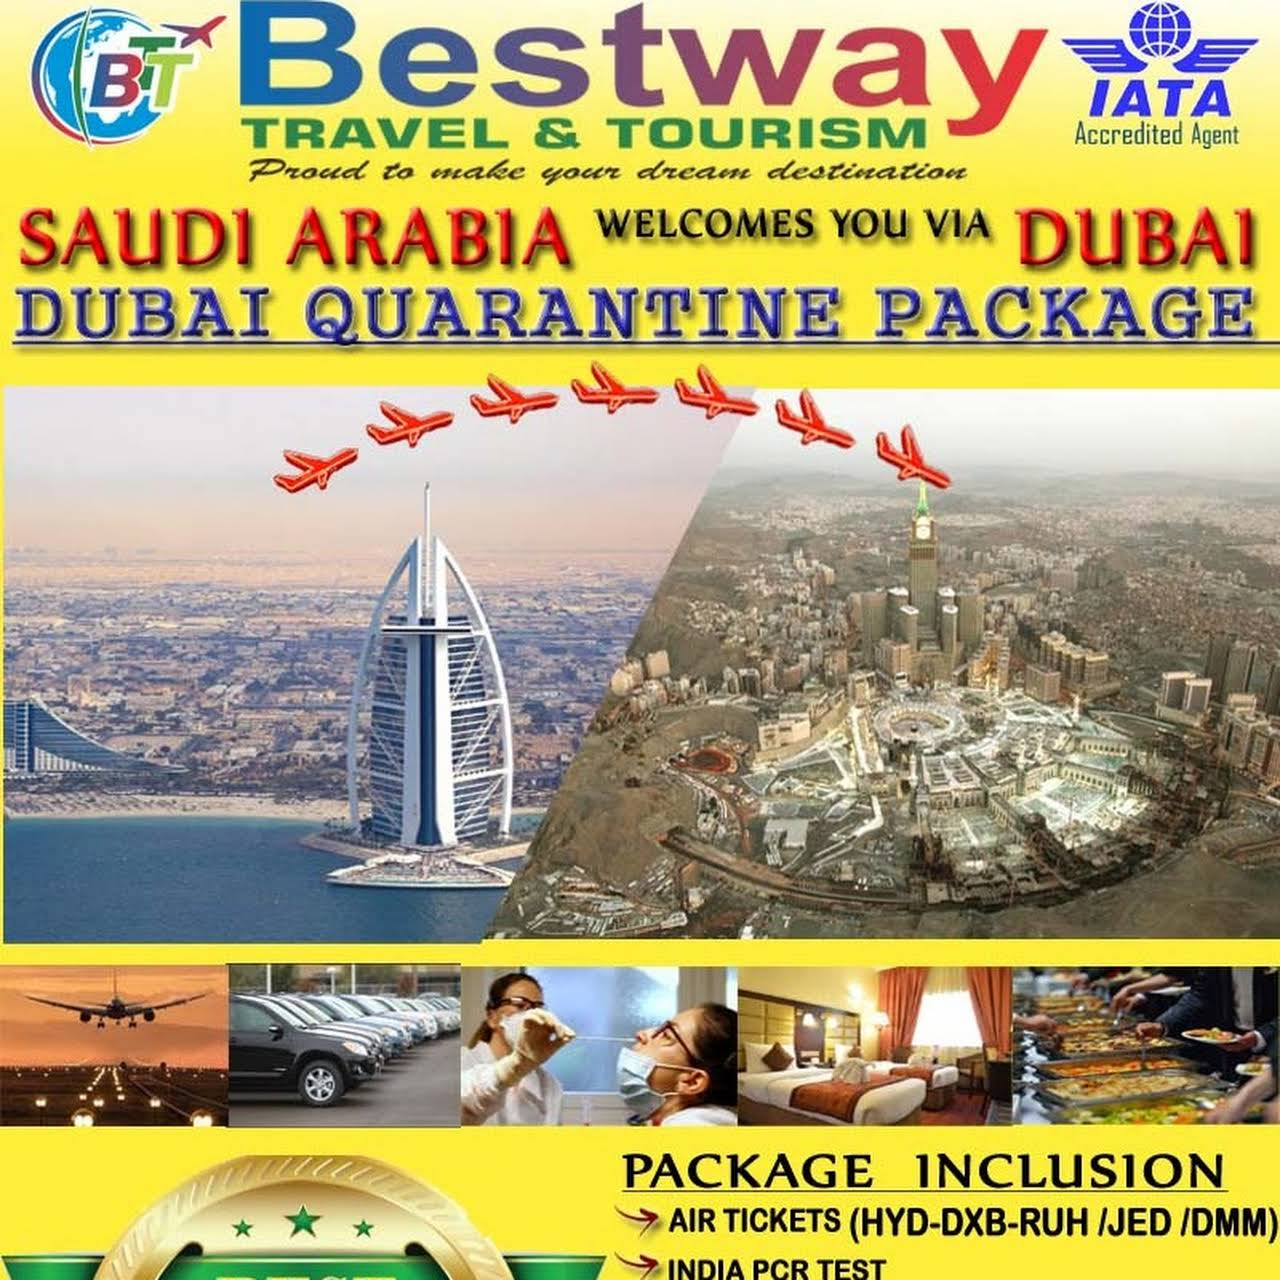 Bestway Travel Tourism A Complete Travel Services